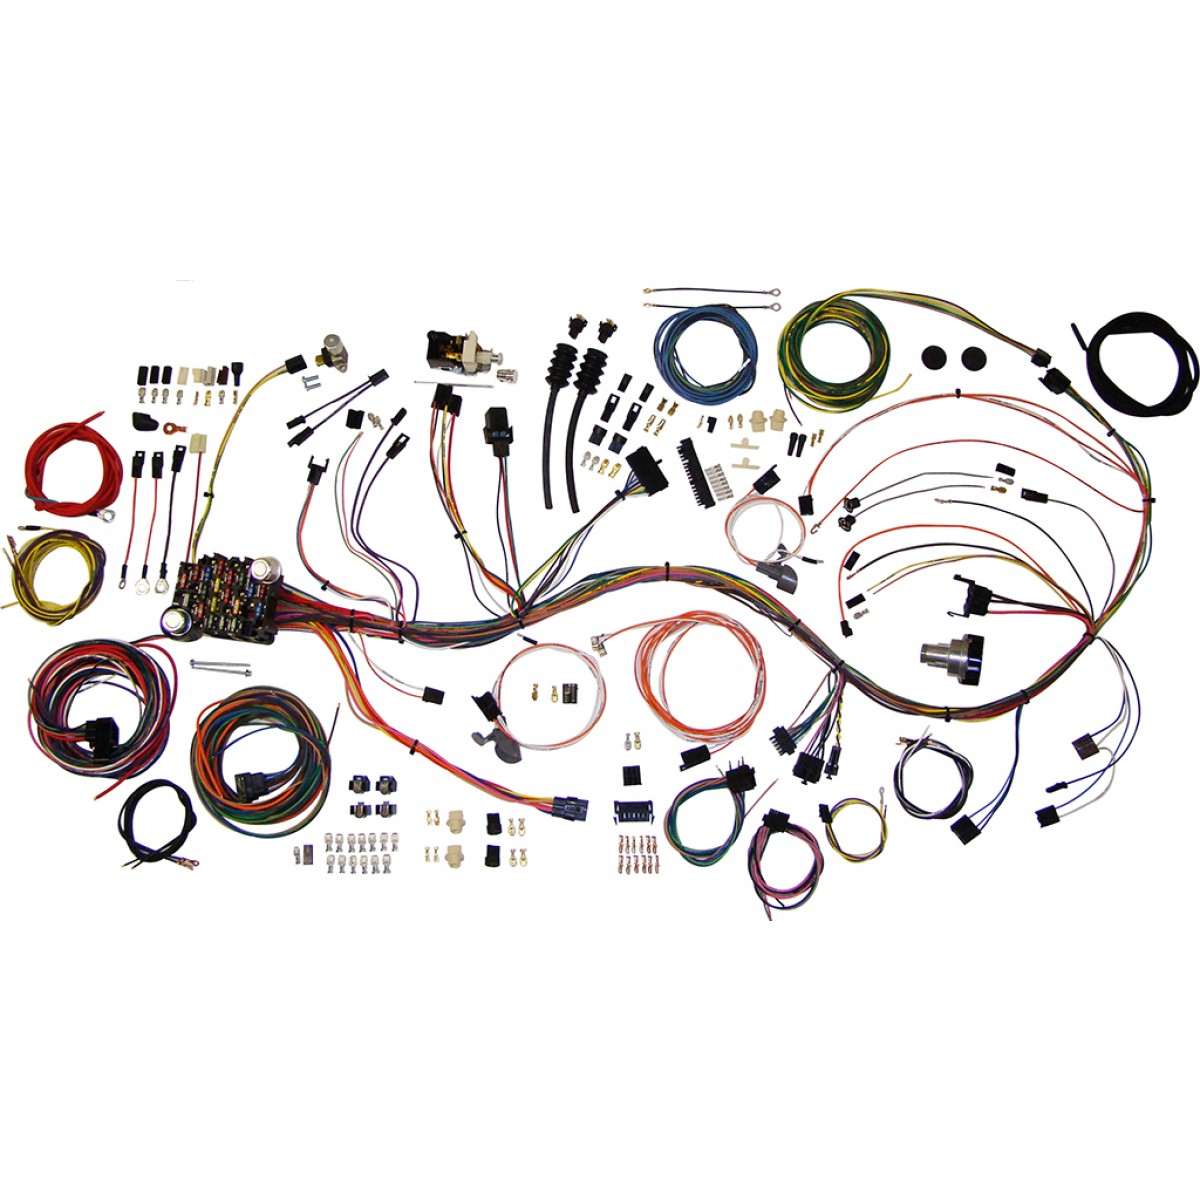 Wiring Harness For 72 Chevy Truck Simple Guide About Diagram 69 Chevrolet Pick Up C10 Complete Kit 1969 1972 Rh Code510 Com Pickup 67